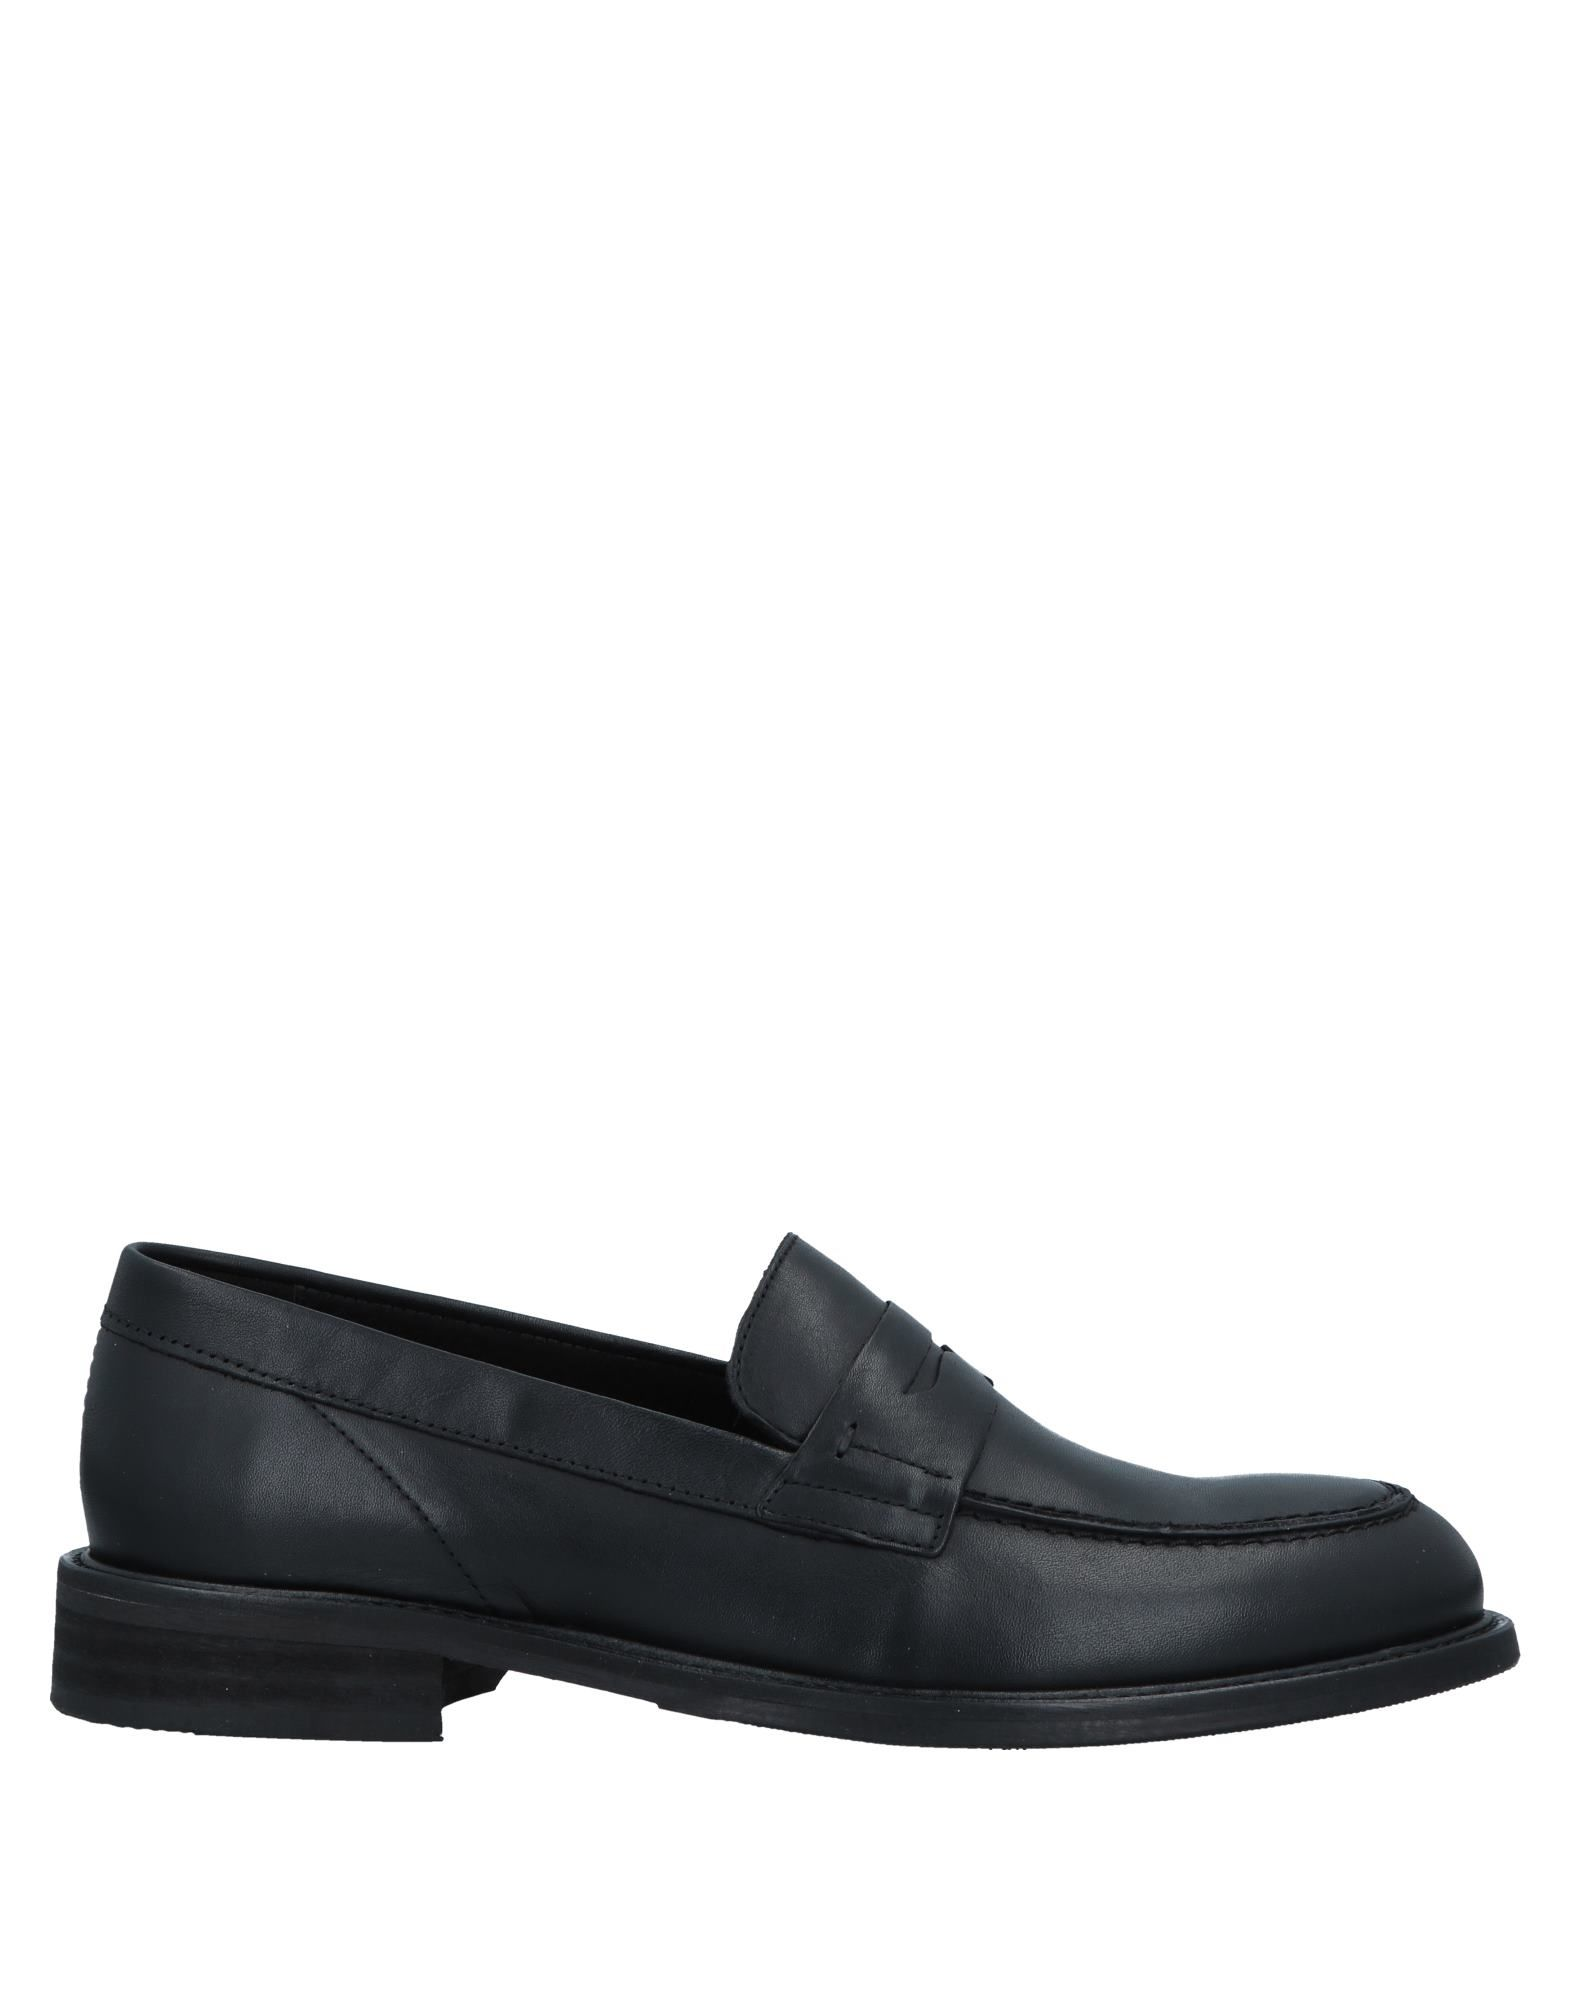 SELECTED HOMME Мокасины одежда из кожи selected sld 412428004